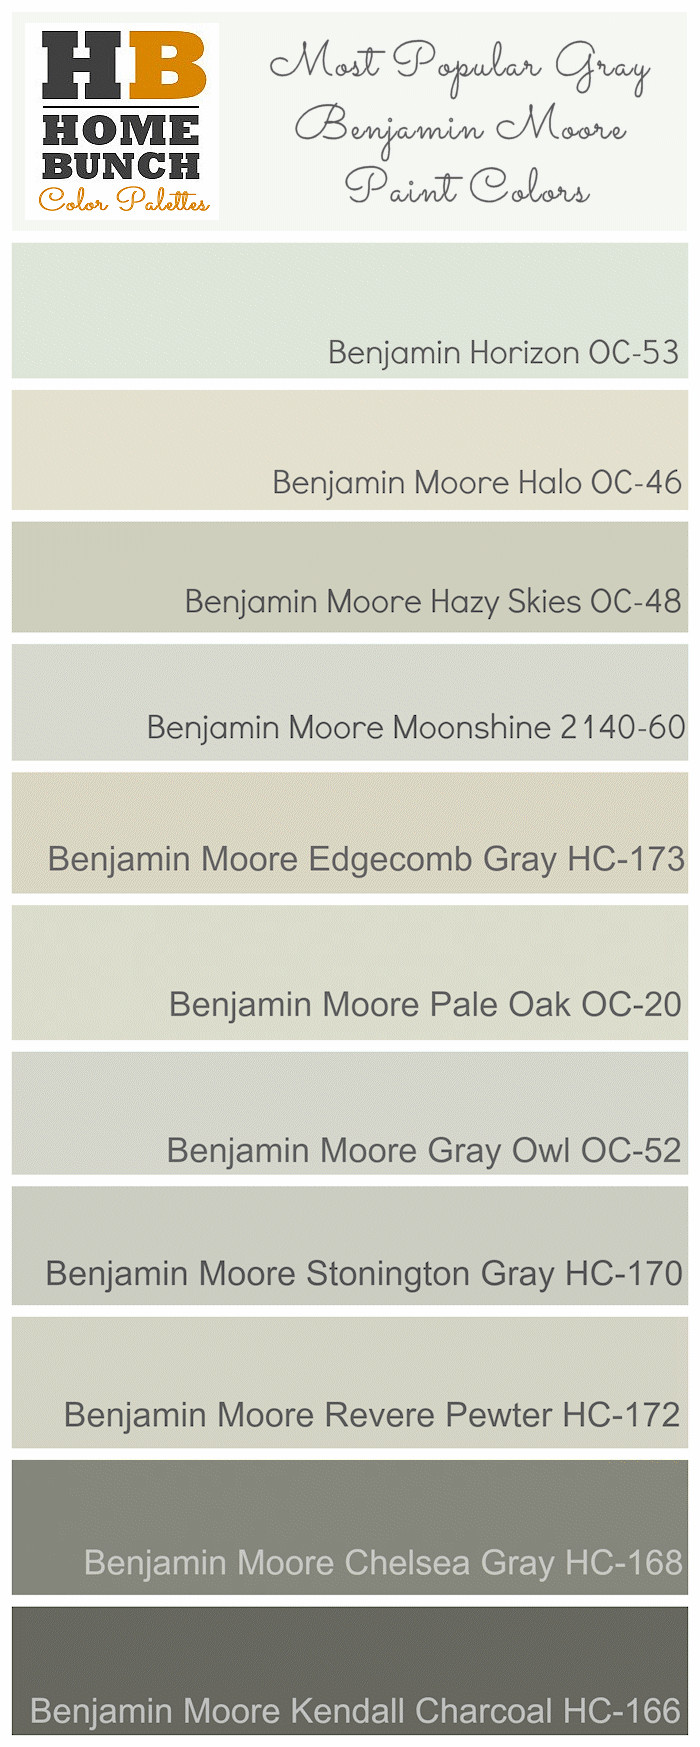 Most Popular Gray Benjamin Moore Paint Colors. Benjamin Horizon OC-53, Benjamin Moore Halo OC-46, Benjamin Moore Hazy Skies OC-48, Benjamin Moore Moonshine 2140-60, Benjamin Moore Edgecomb Gray HC-173, Benjamin Moore Pale Oak OC-20, Benjamin Moore Gray Owl OC-52, Benjamin Moore Stonington Gray HC-170, Benjamin Moore Revere Pewter HC-172, Benjamin Moore Chelsea Gray HC-168, Benjamin Moore Kendall Charcoal HC-166